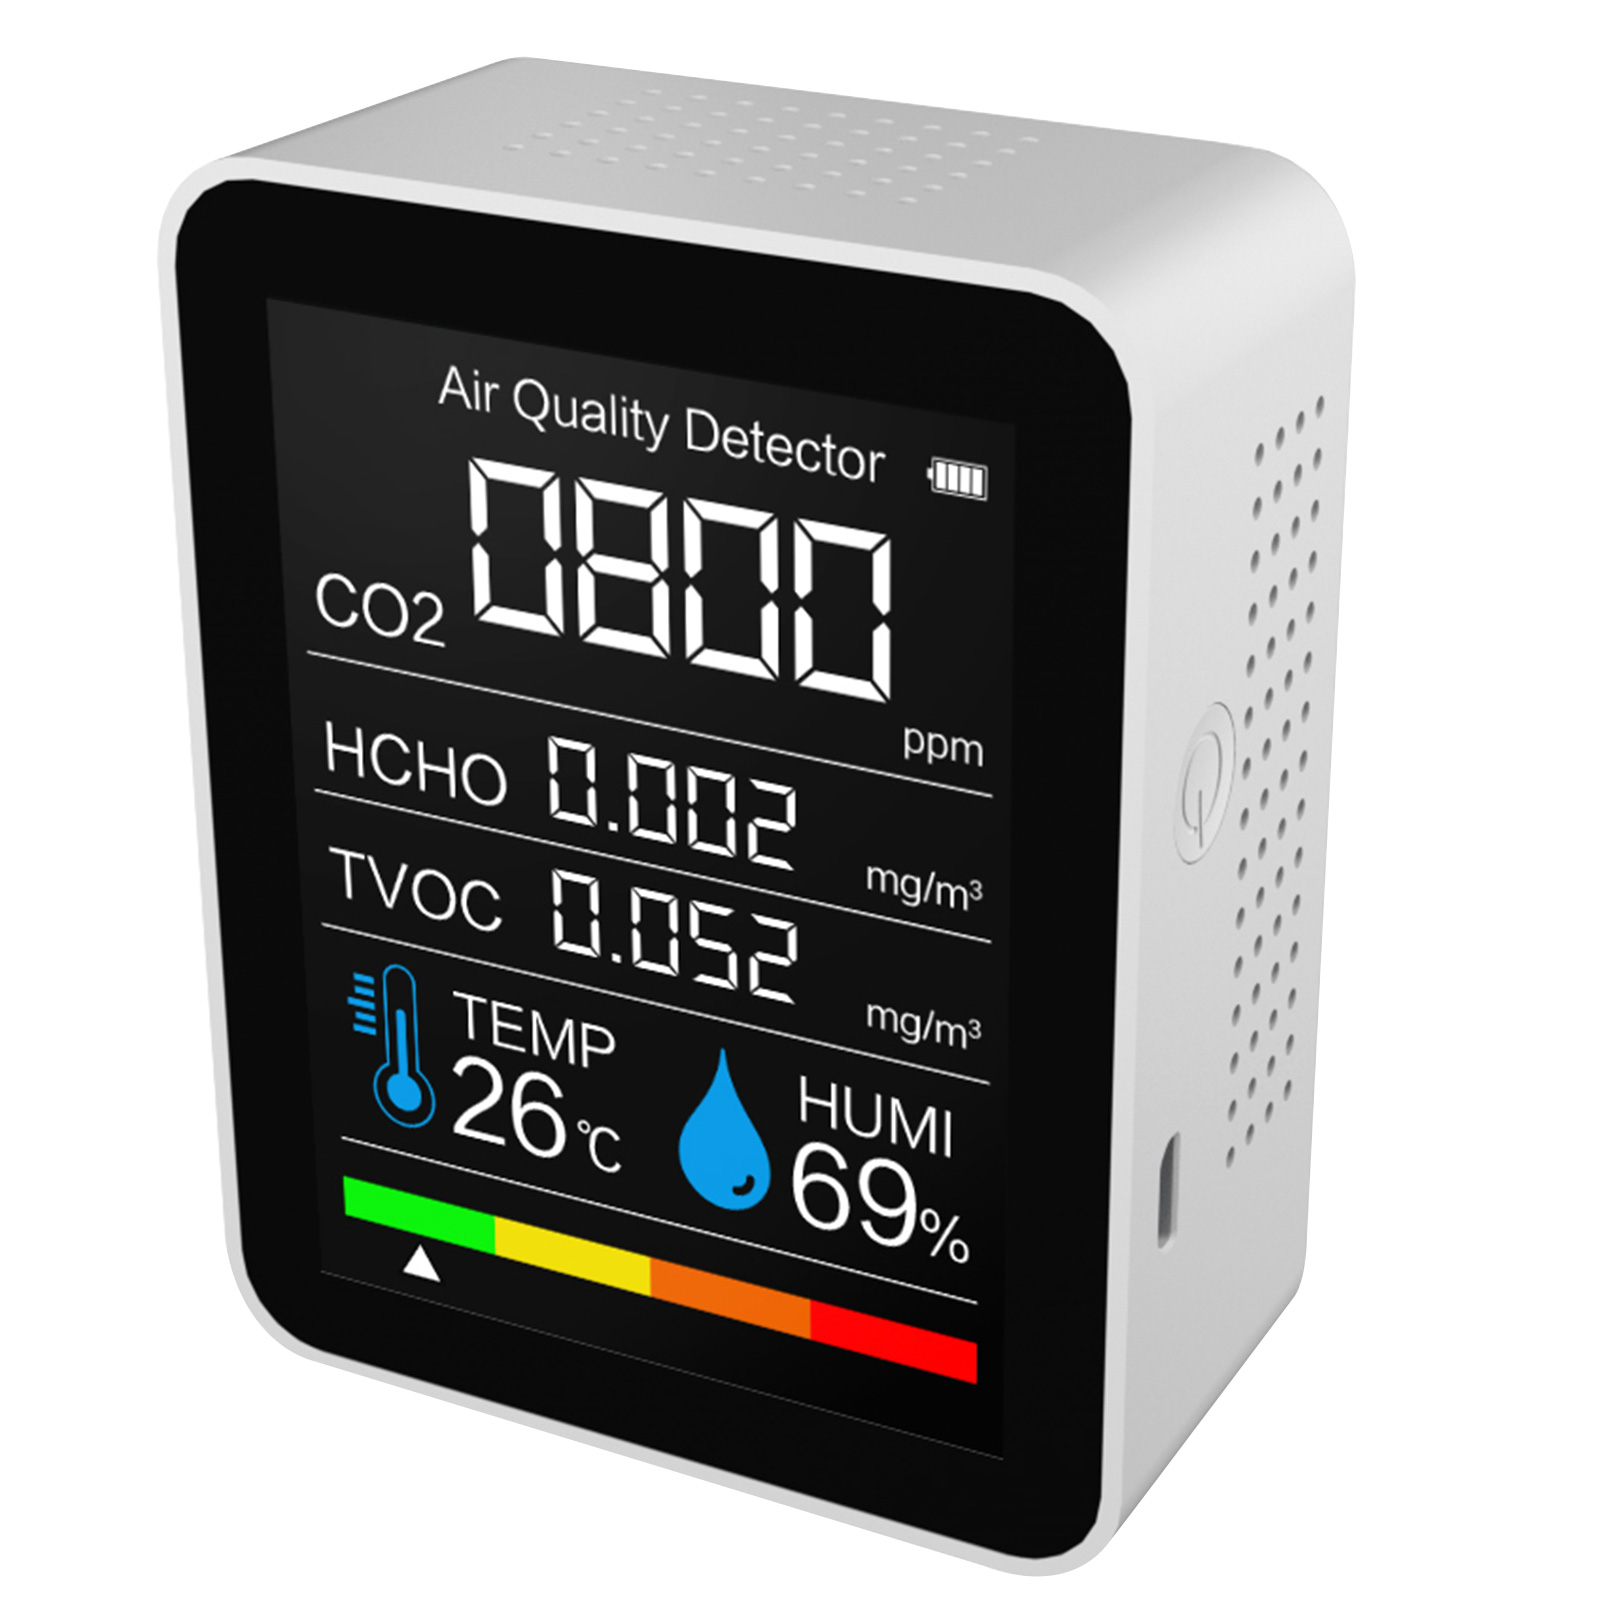 Details about  /Household C02 TVOC Detector Temperature Humidity Tester Air Quality Monitor